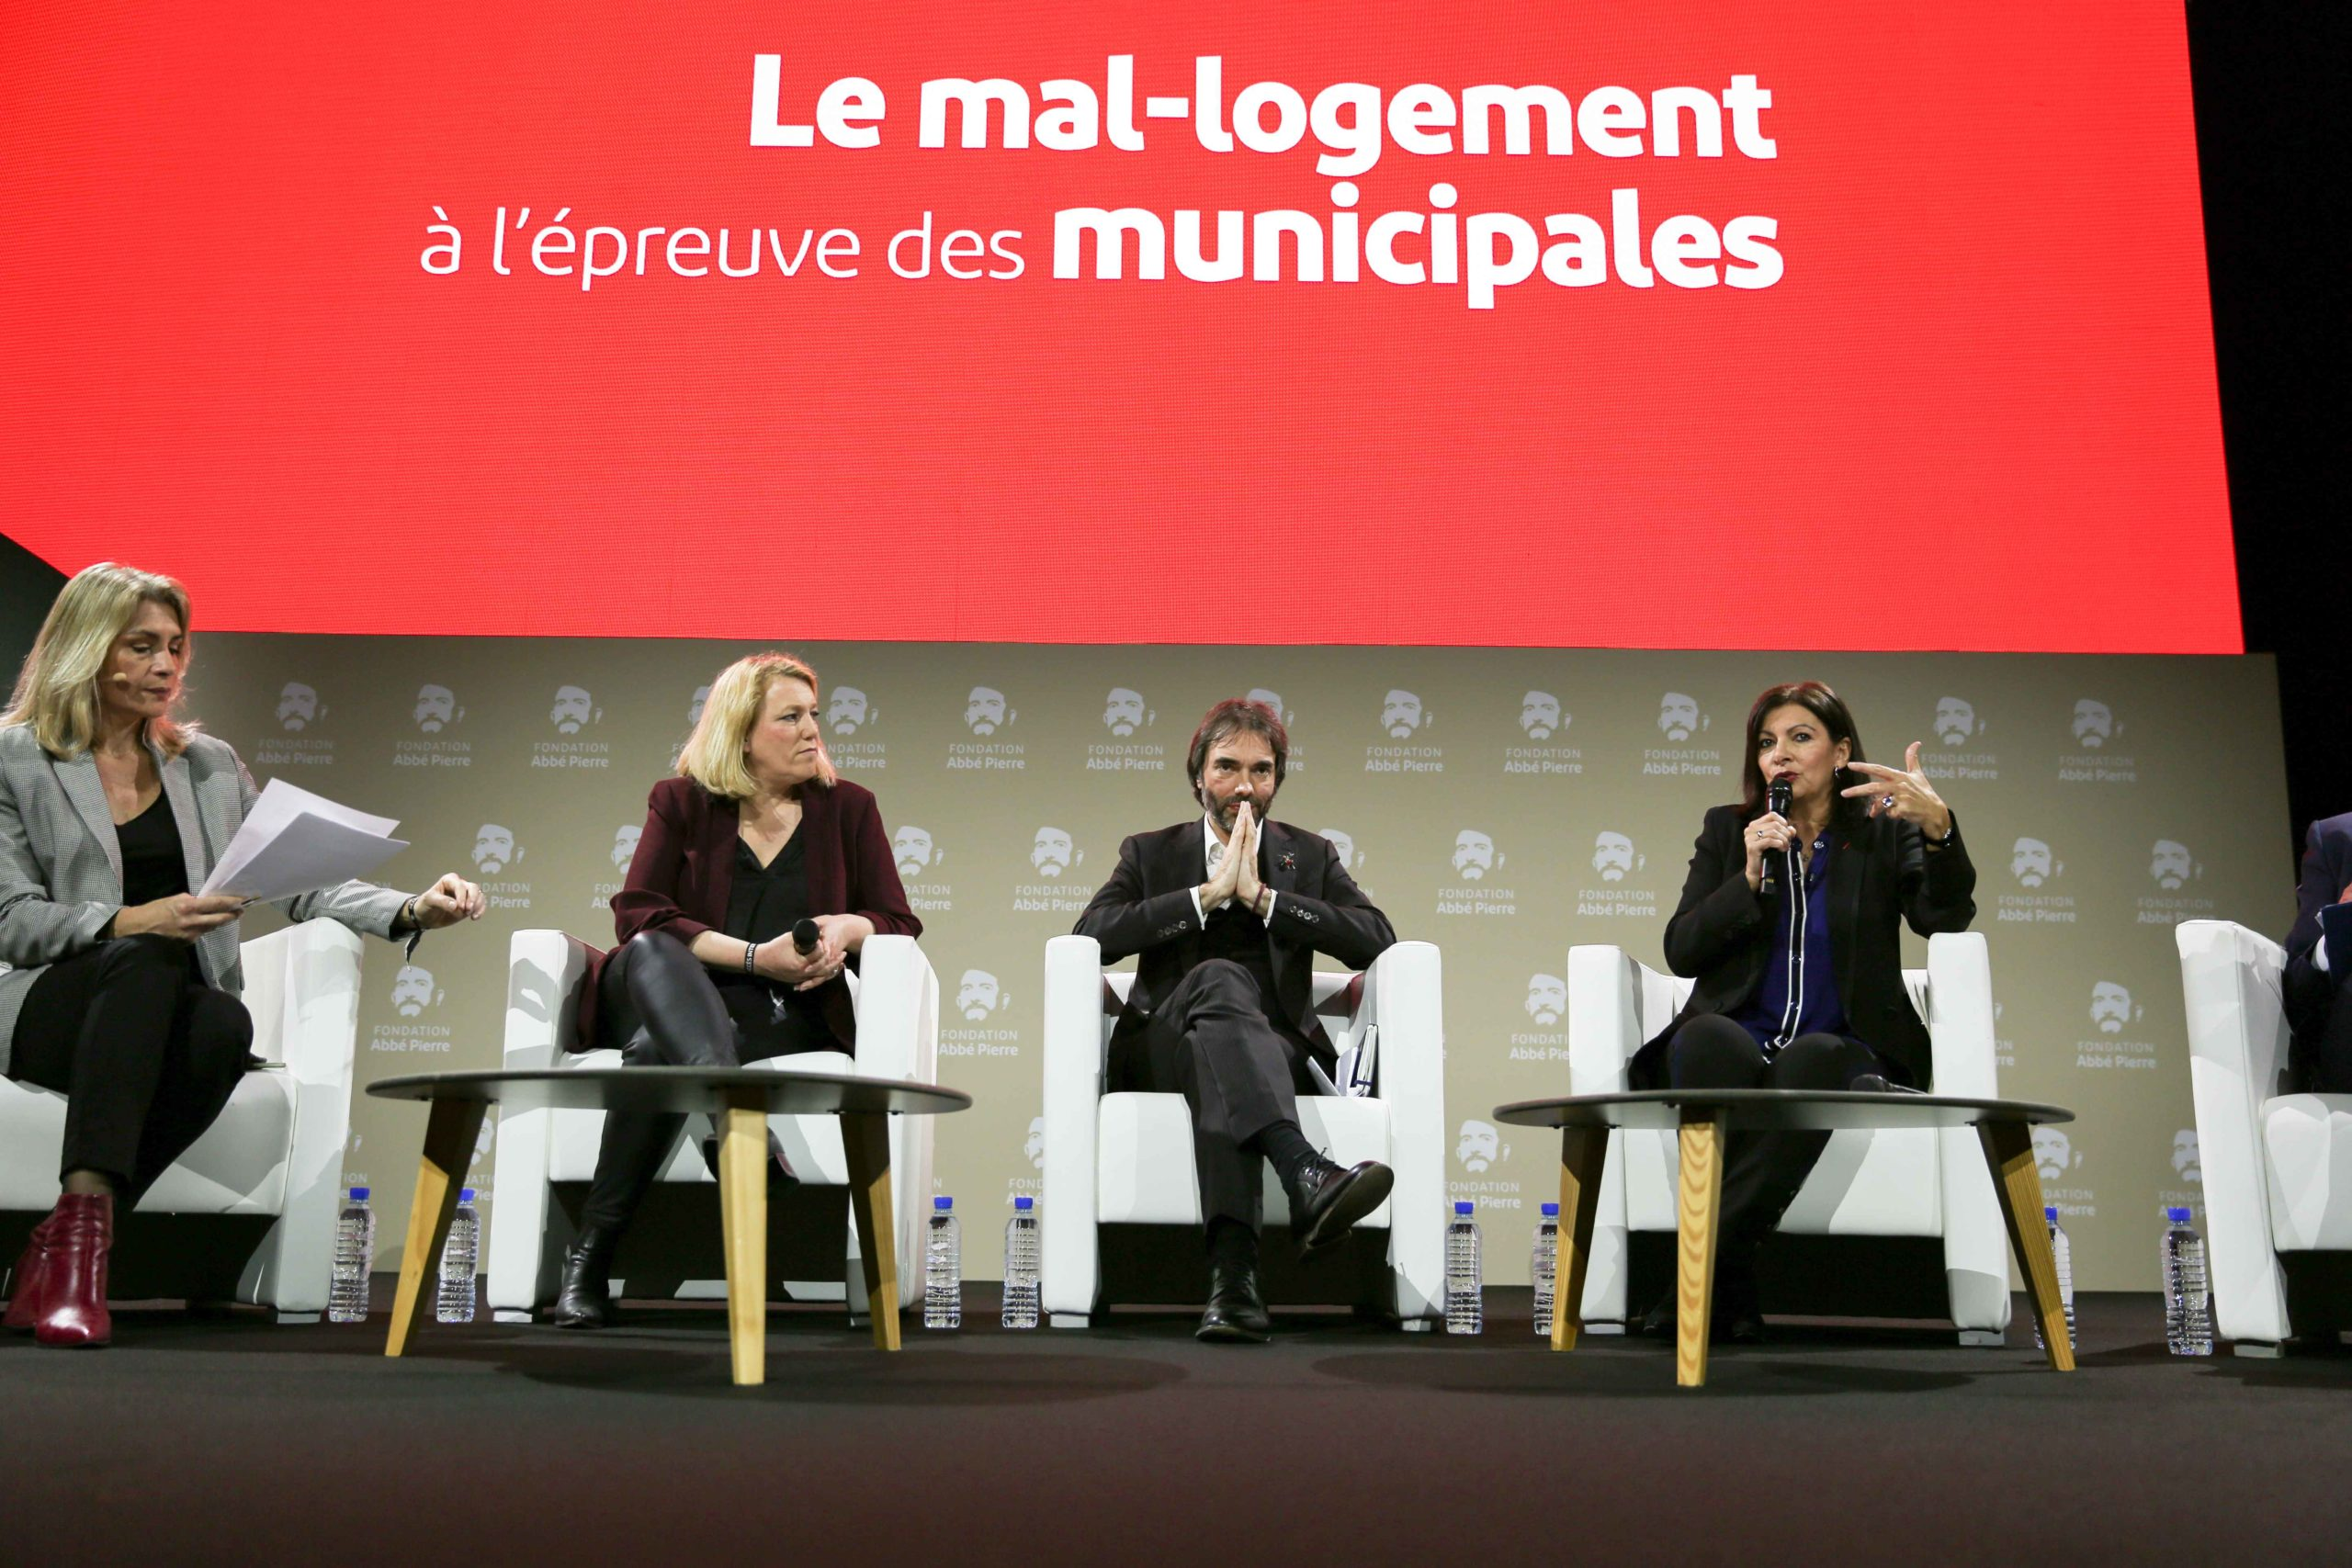 Paris' city councillor, French left-wing Parti de Gauche (PG) Secretary General and La France Insoumise (LFI) leftist party's speaker and candidate for the upcoming municipal elections in Paris Danielle Simonnet (2L), French mathematician and Paris city ha